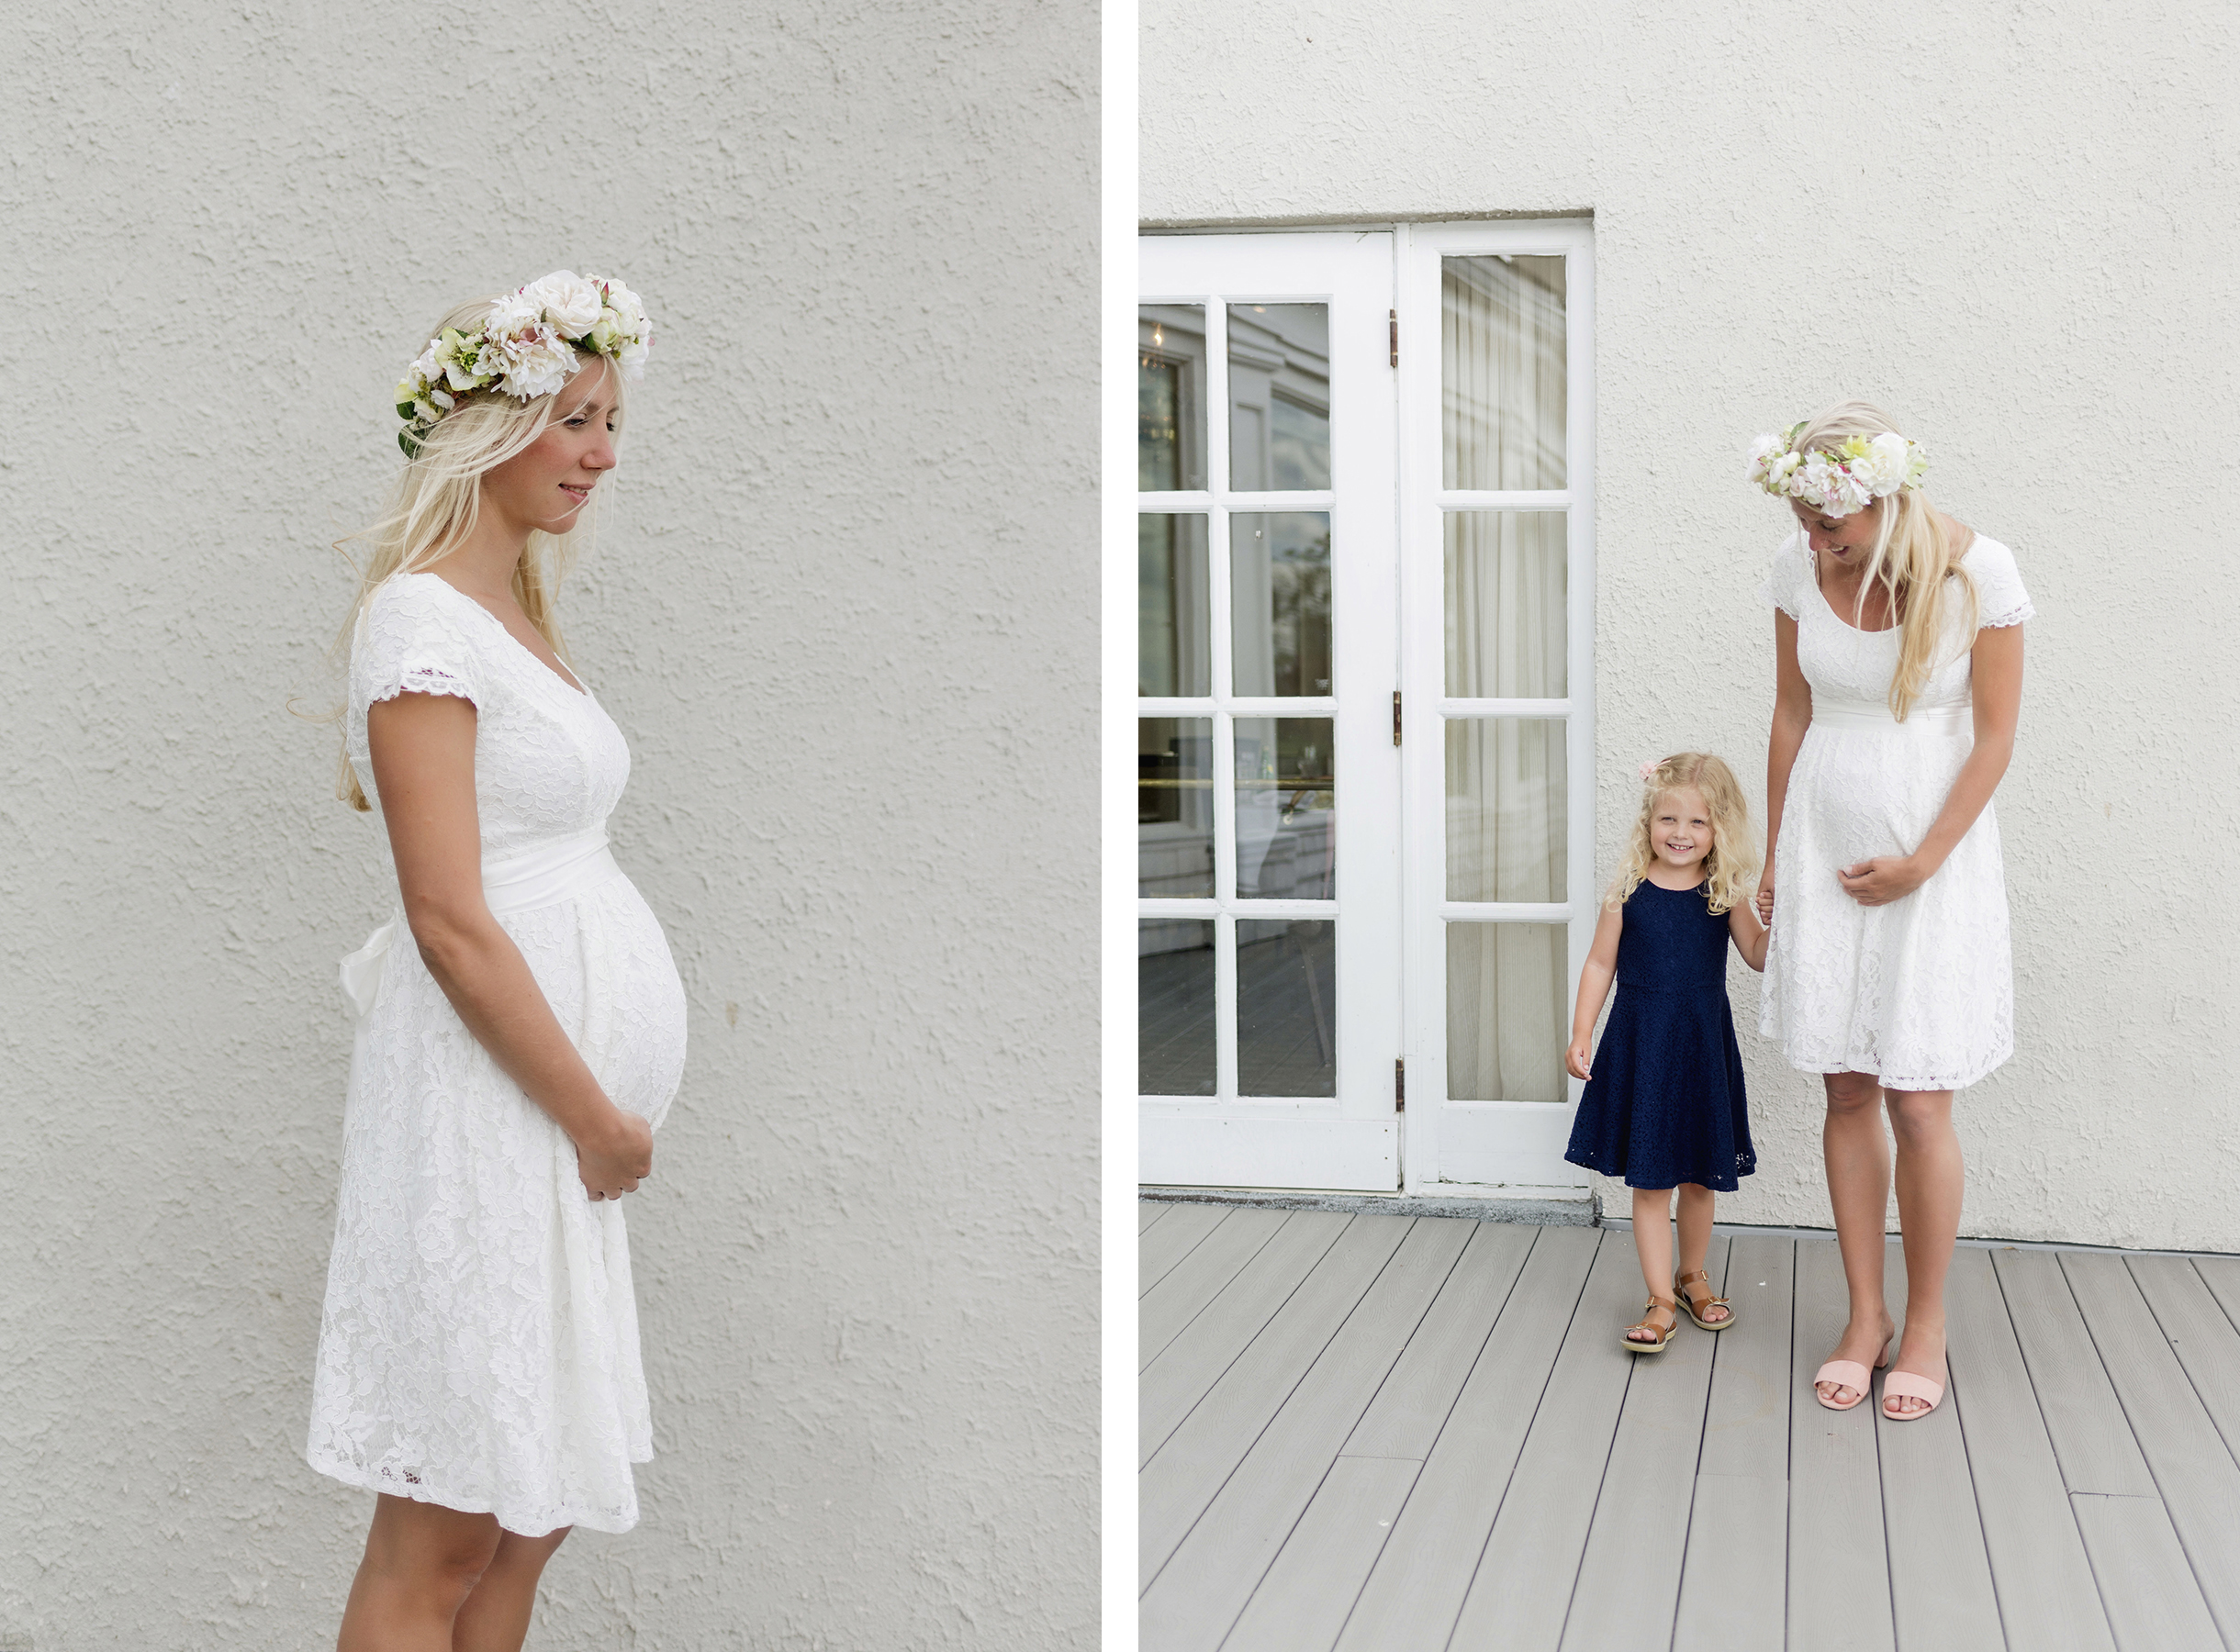 Maternity photoshoot with flower crown | A wild + boho baby shower with pastel colours + rustic details